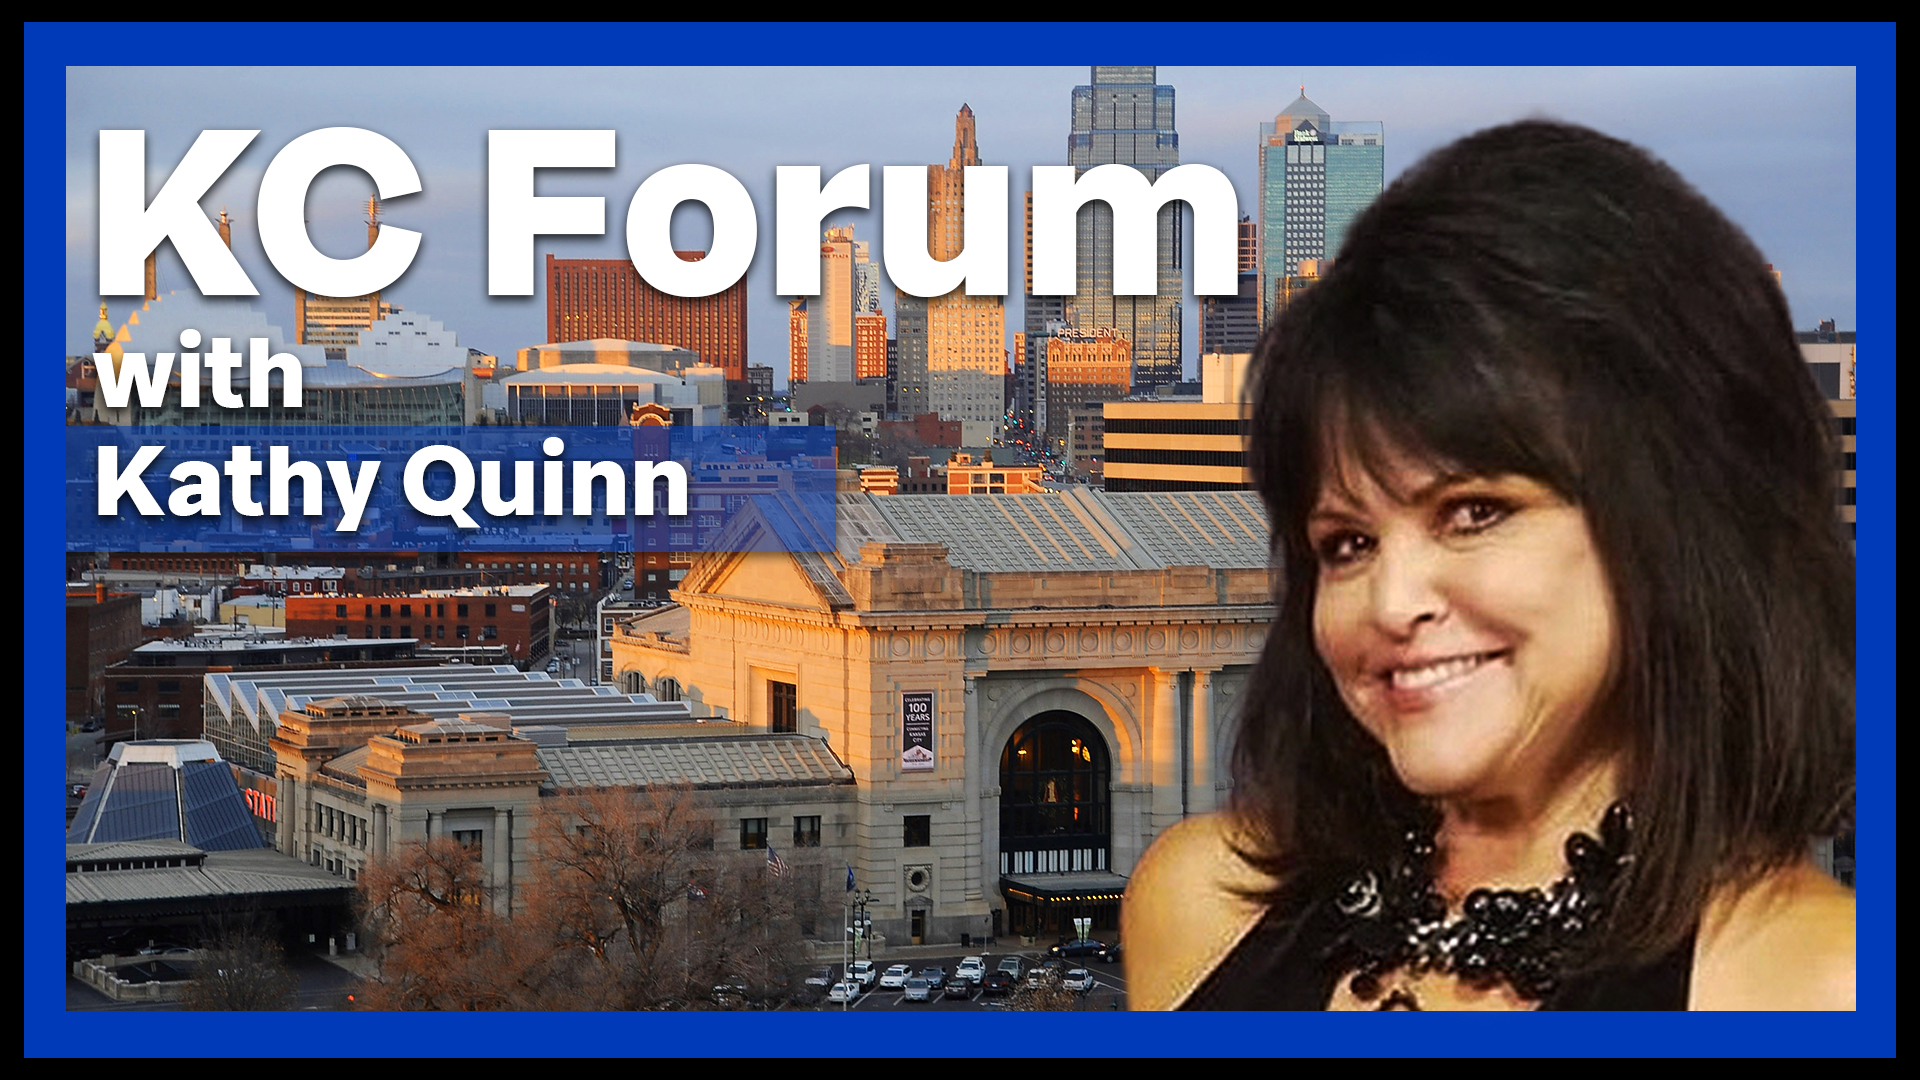 Picture of Kathy Quinn and the KC skyline